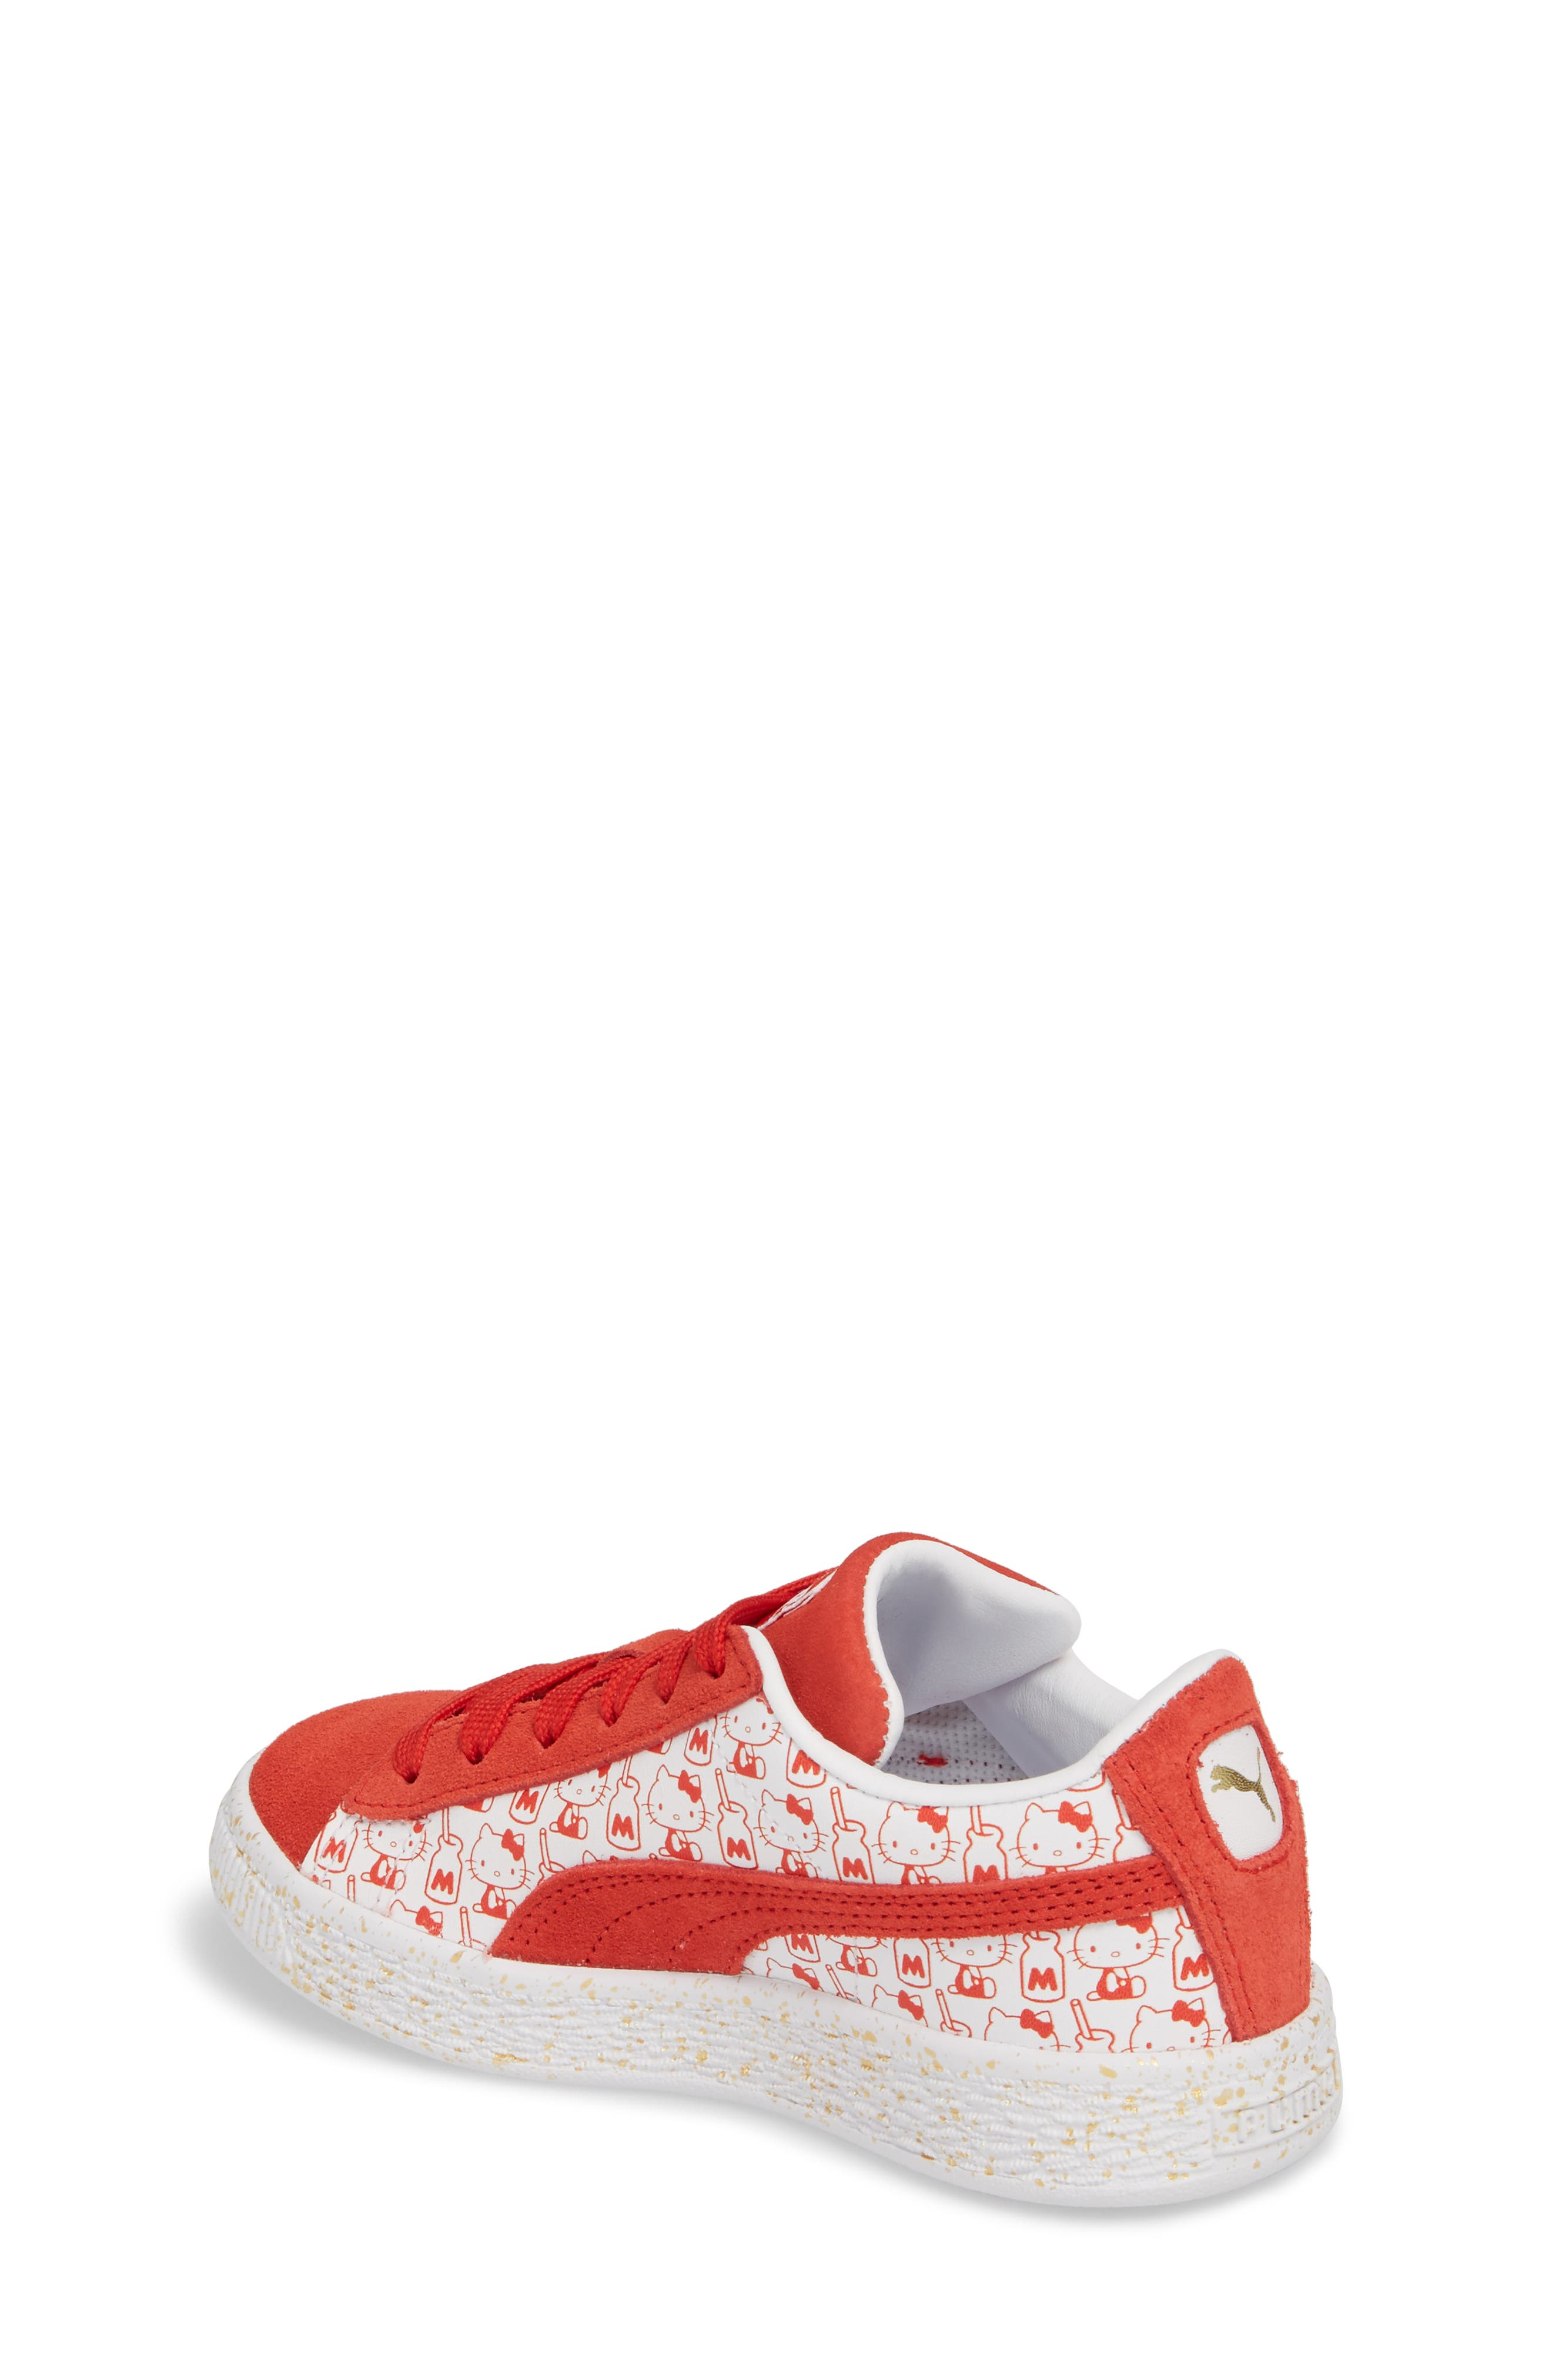 x Hello Kitty Suede Classic Sneaker,                             Alternate thumbnail 2, color,                             600